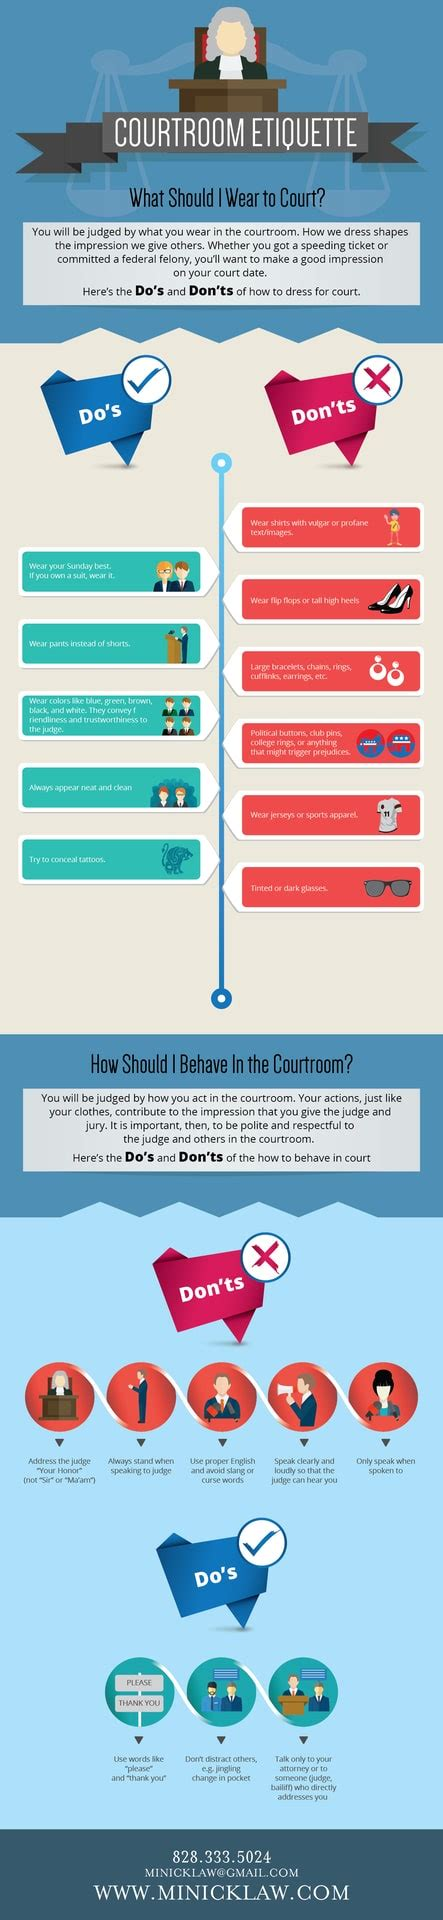 Courtroom Etiquette How To Dress For Court & How To Behave In Court Visually